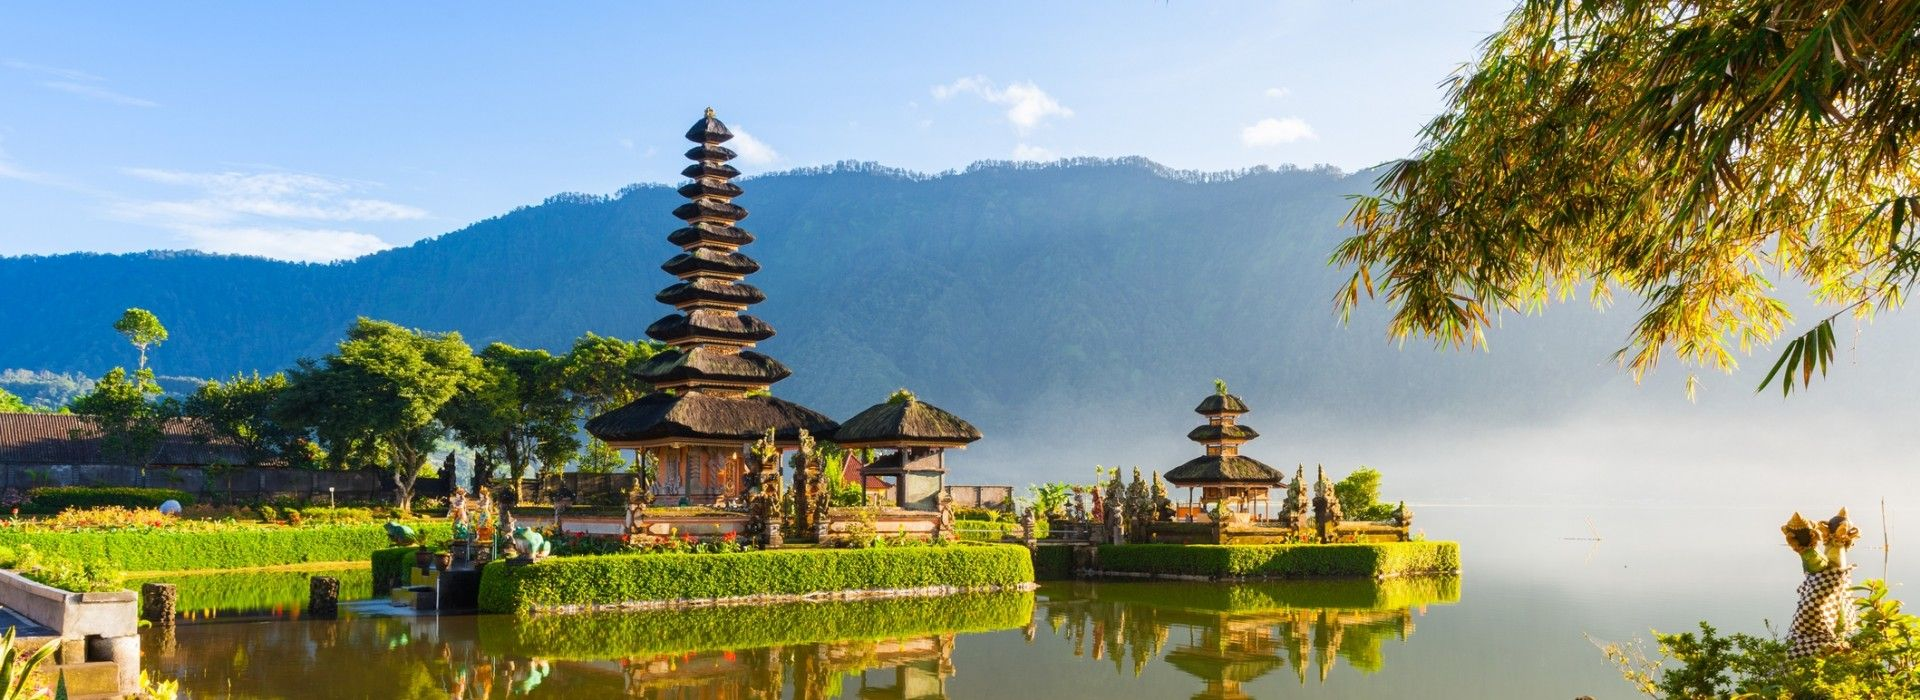 Sightseeing, attractions, culture and history Tours in Indonesia